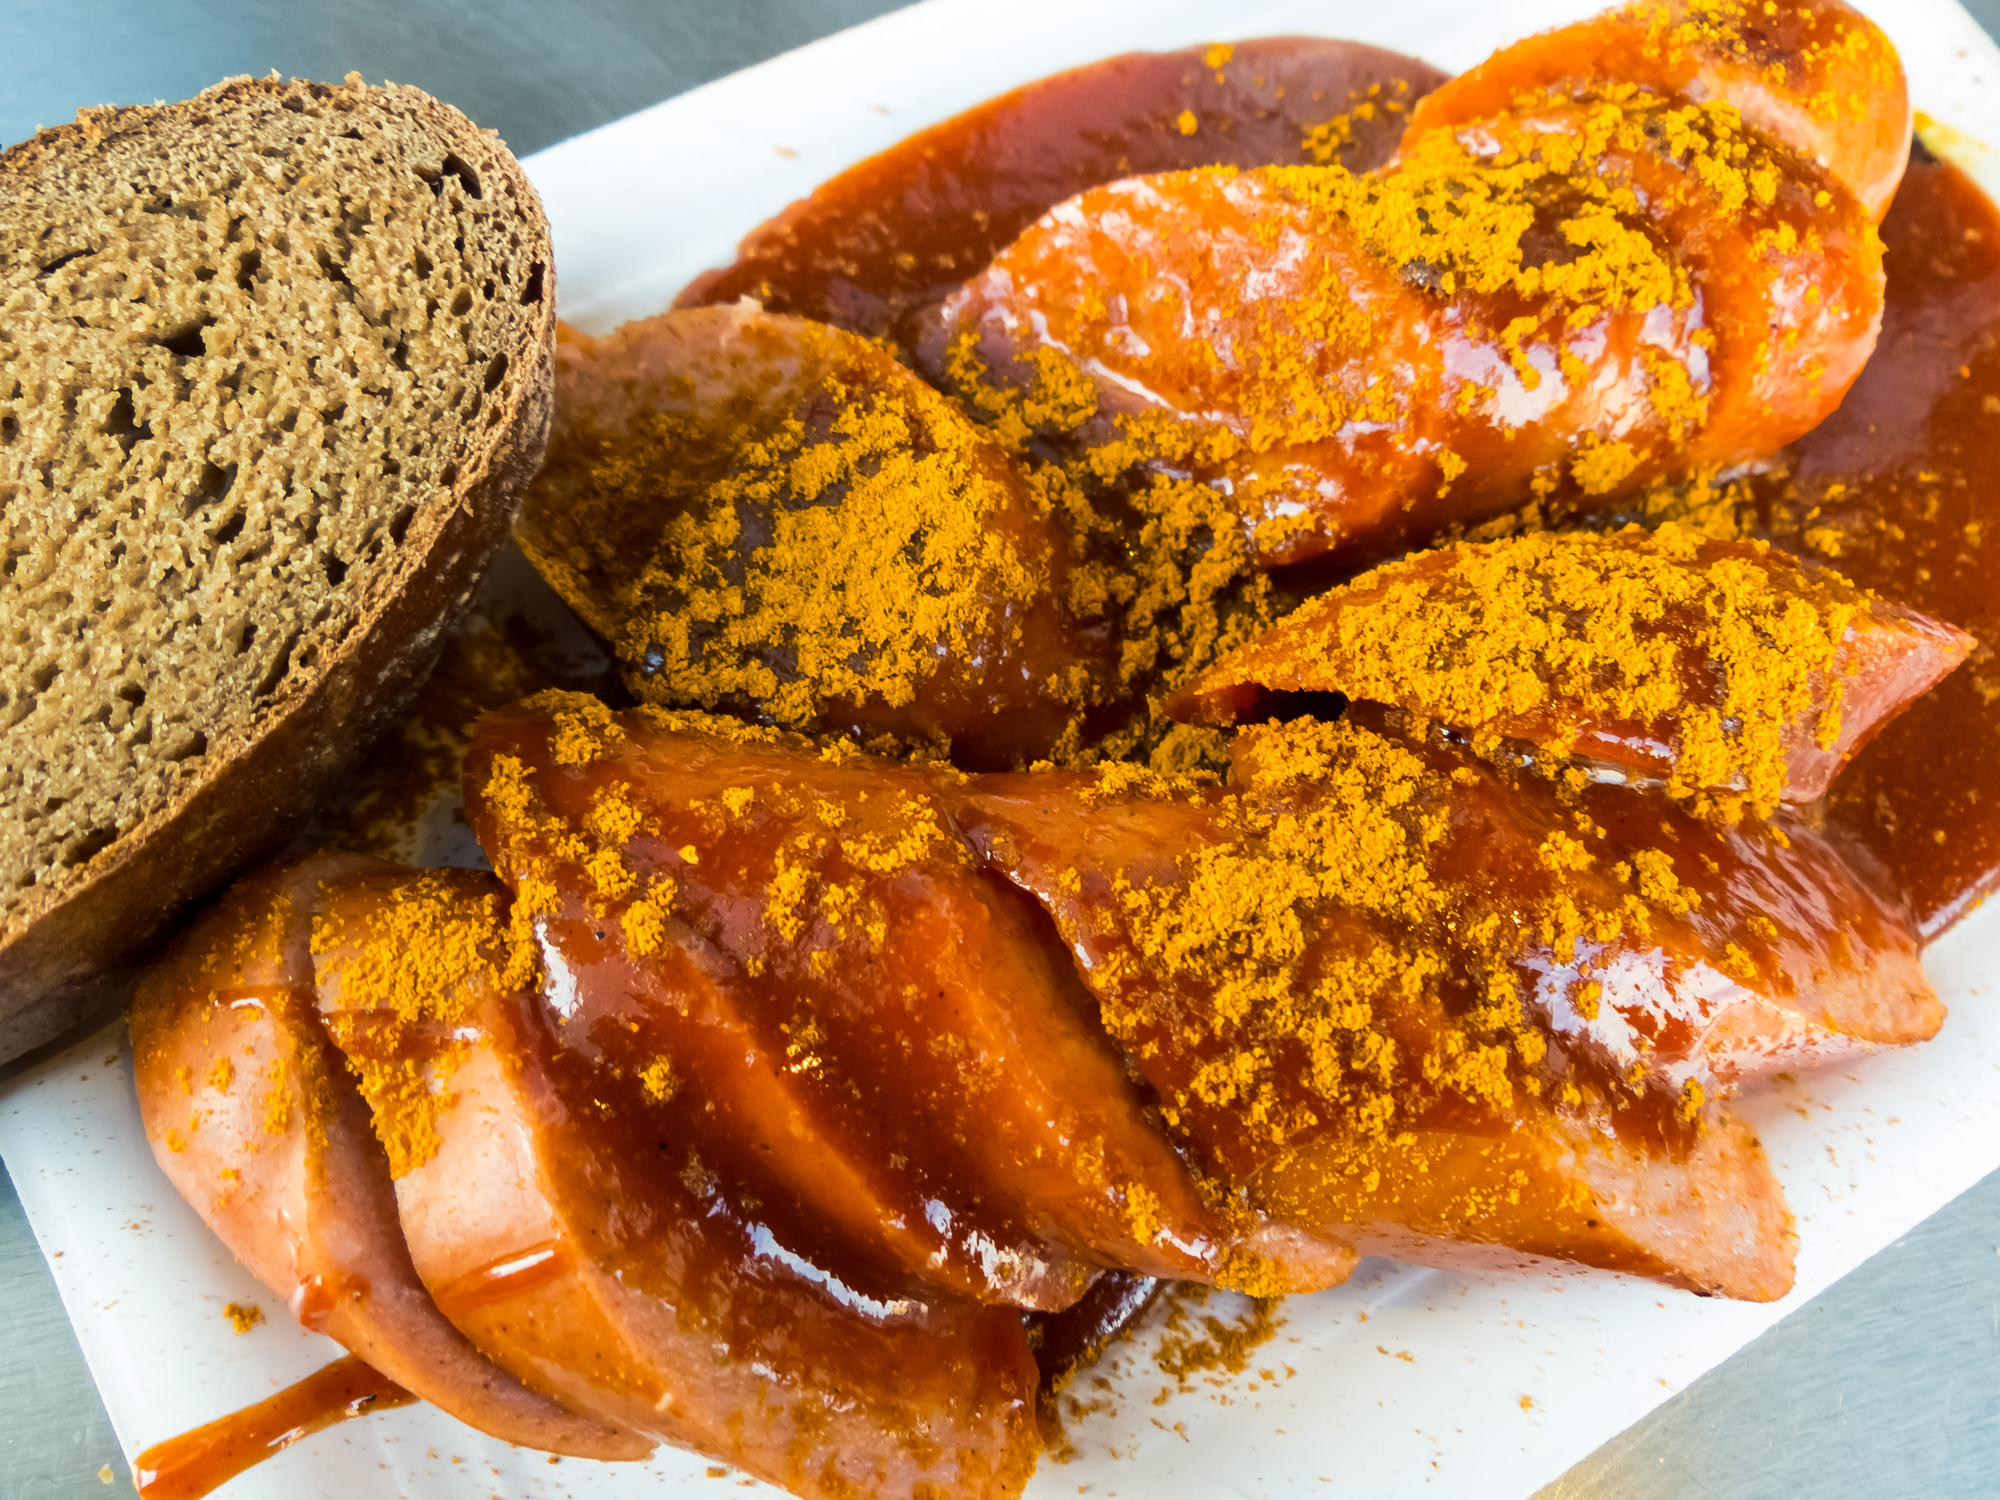 German sausages with curry